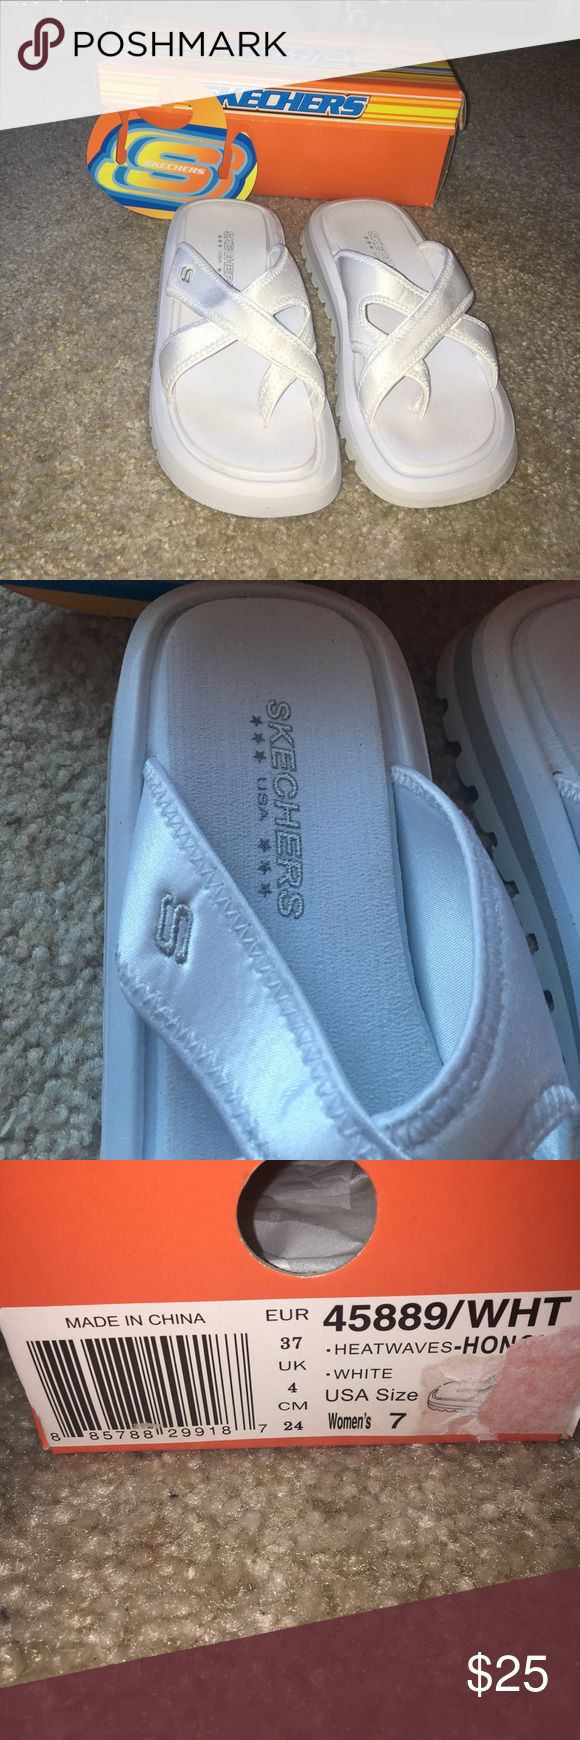 Sketchers beach white shoes Skechers beach flip-flops Brand new! Comes with original box Color: white and a little bit of silver  Size: 7  Open to offers! sketchers Shoes Slippers